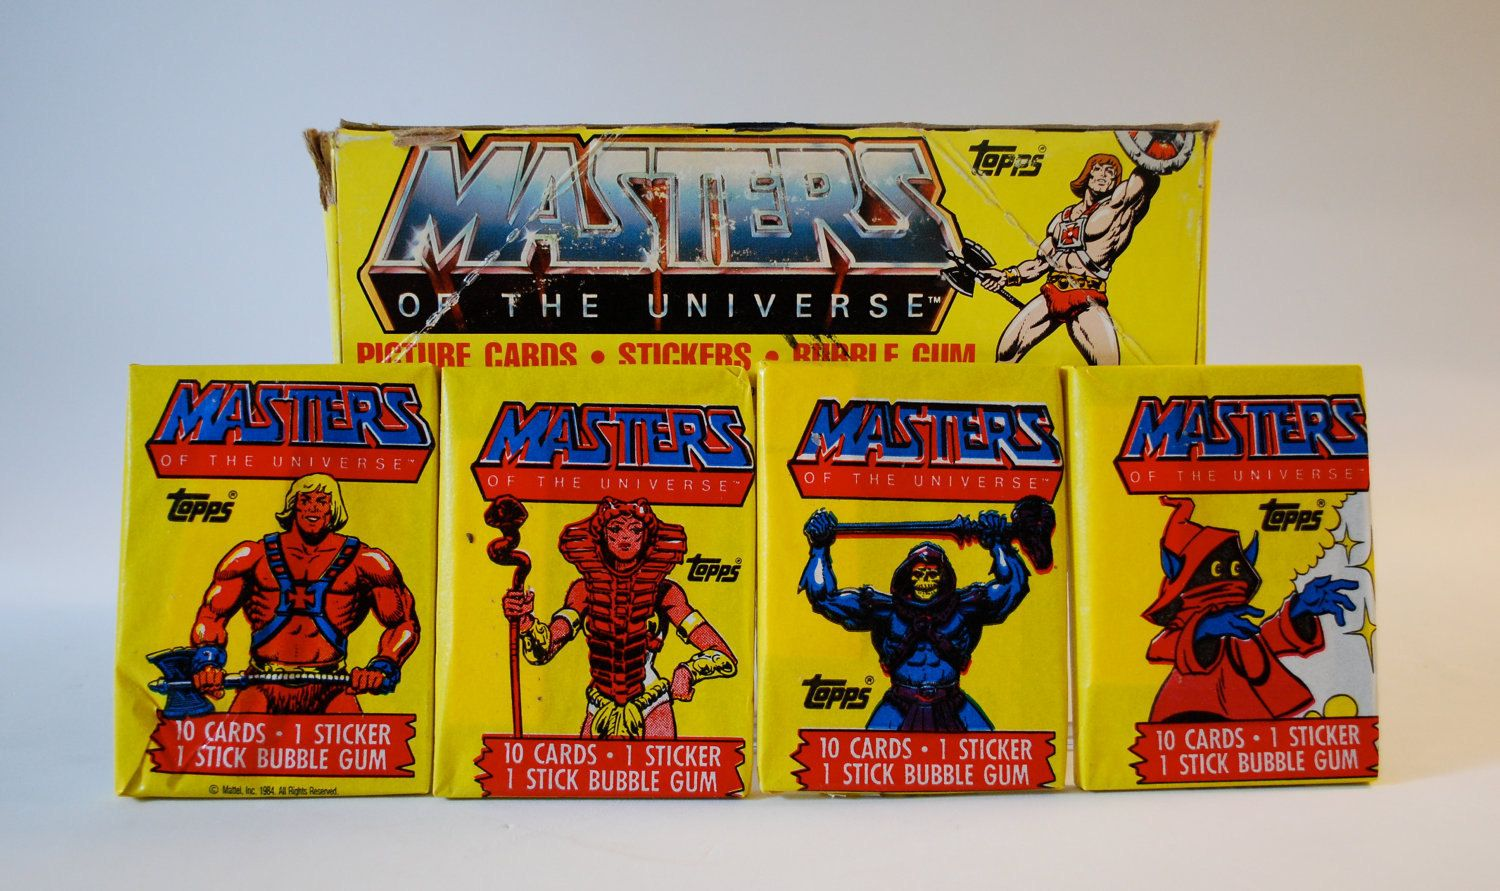 Masters Of The Universe trading cards (1983) I never knew